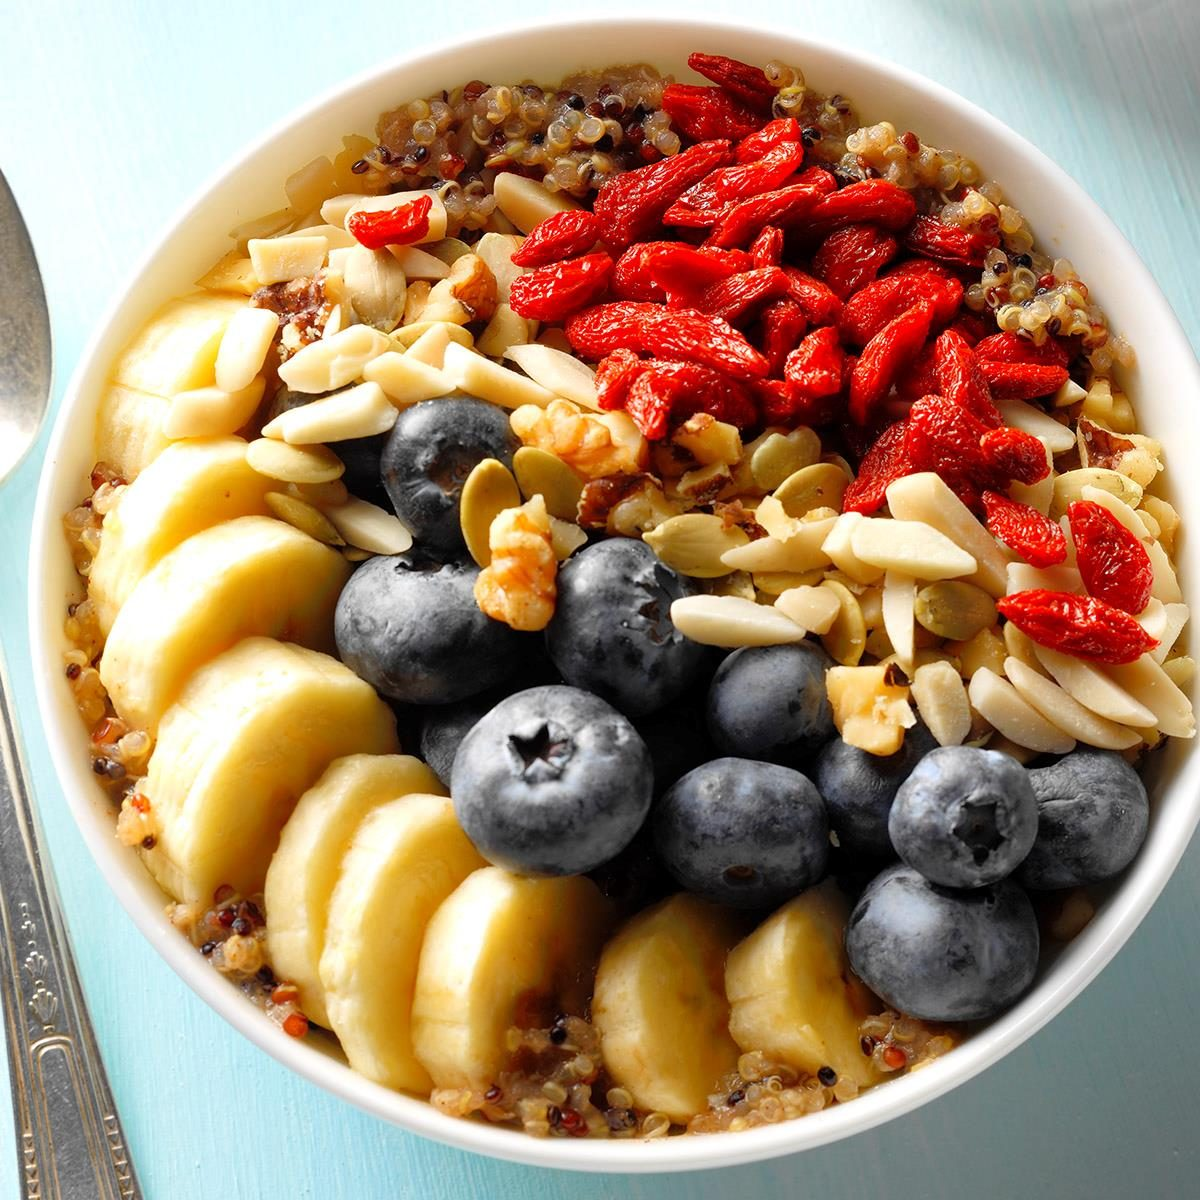 16 Healthy Breakfast Foods You Probably Didn't Eat This